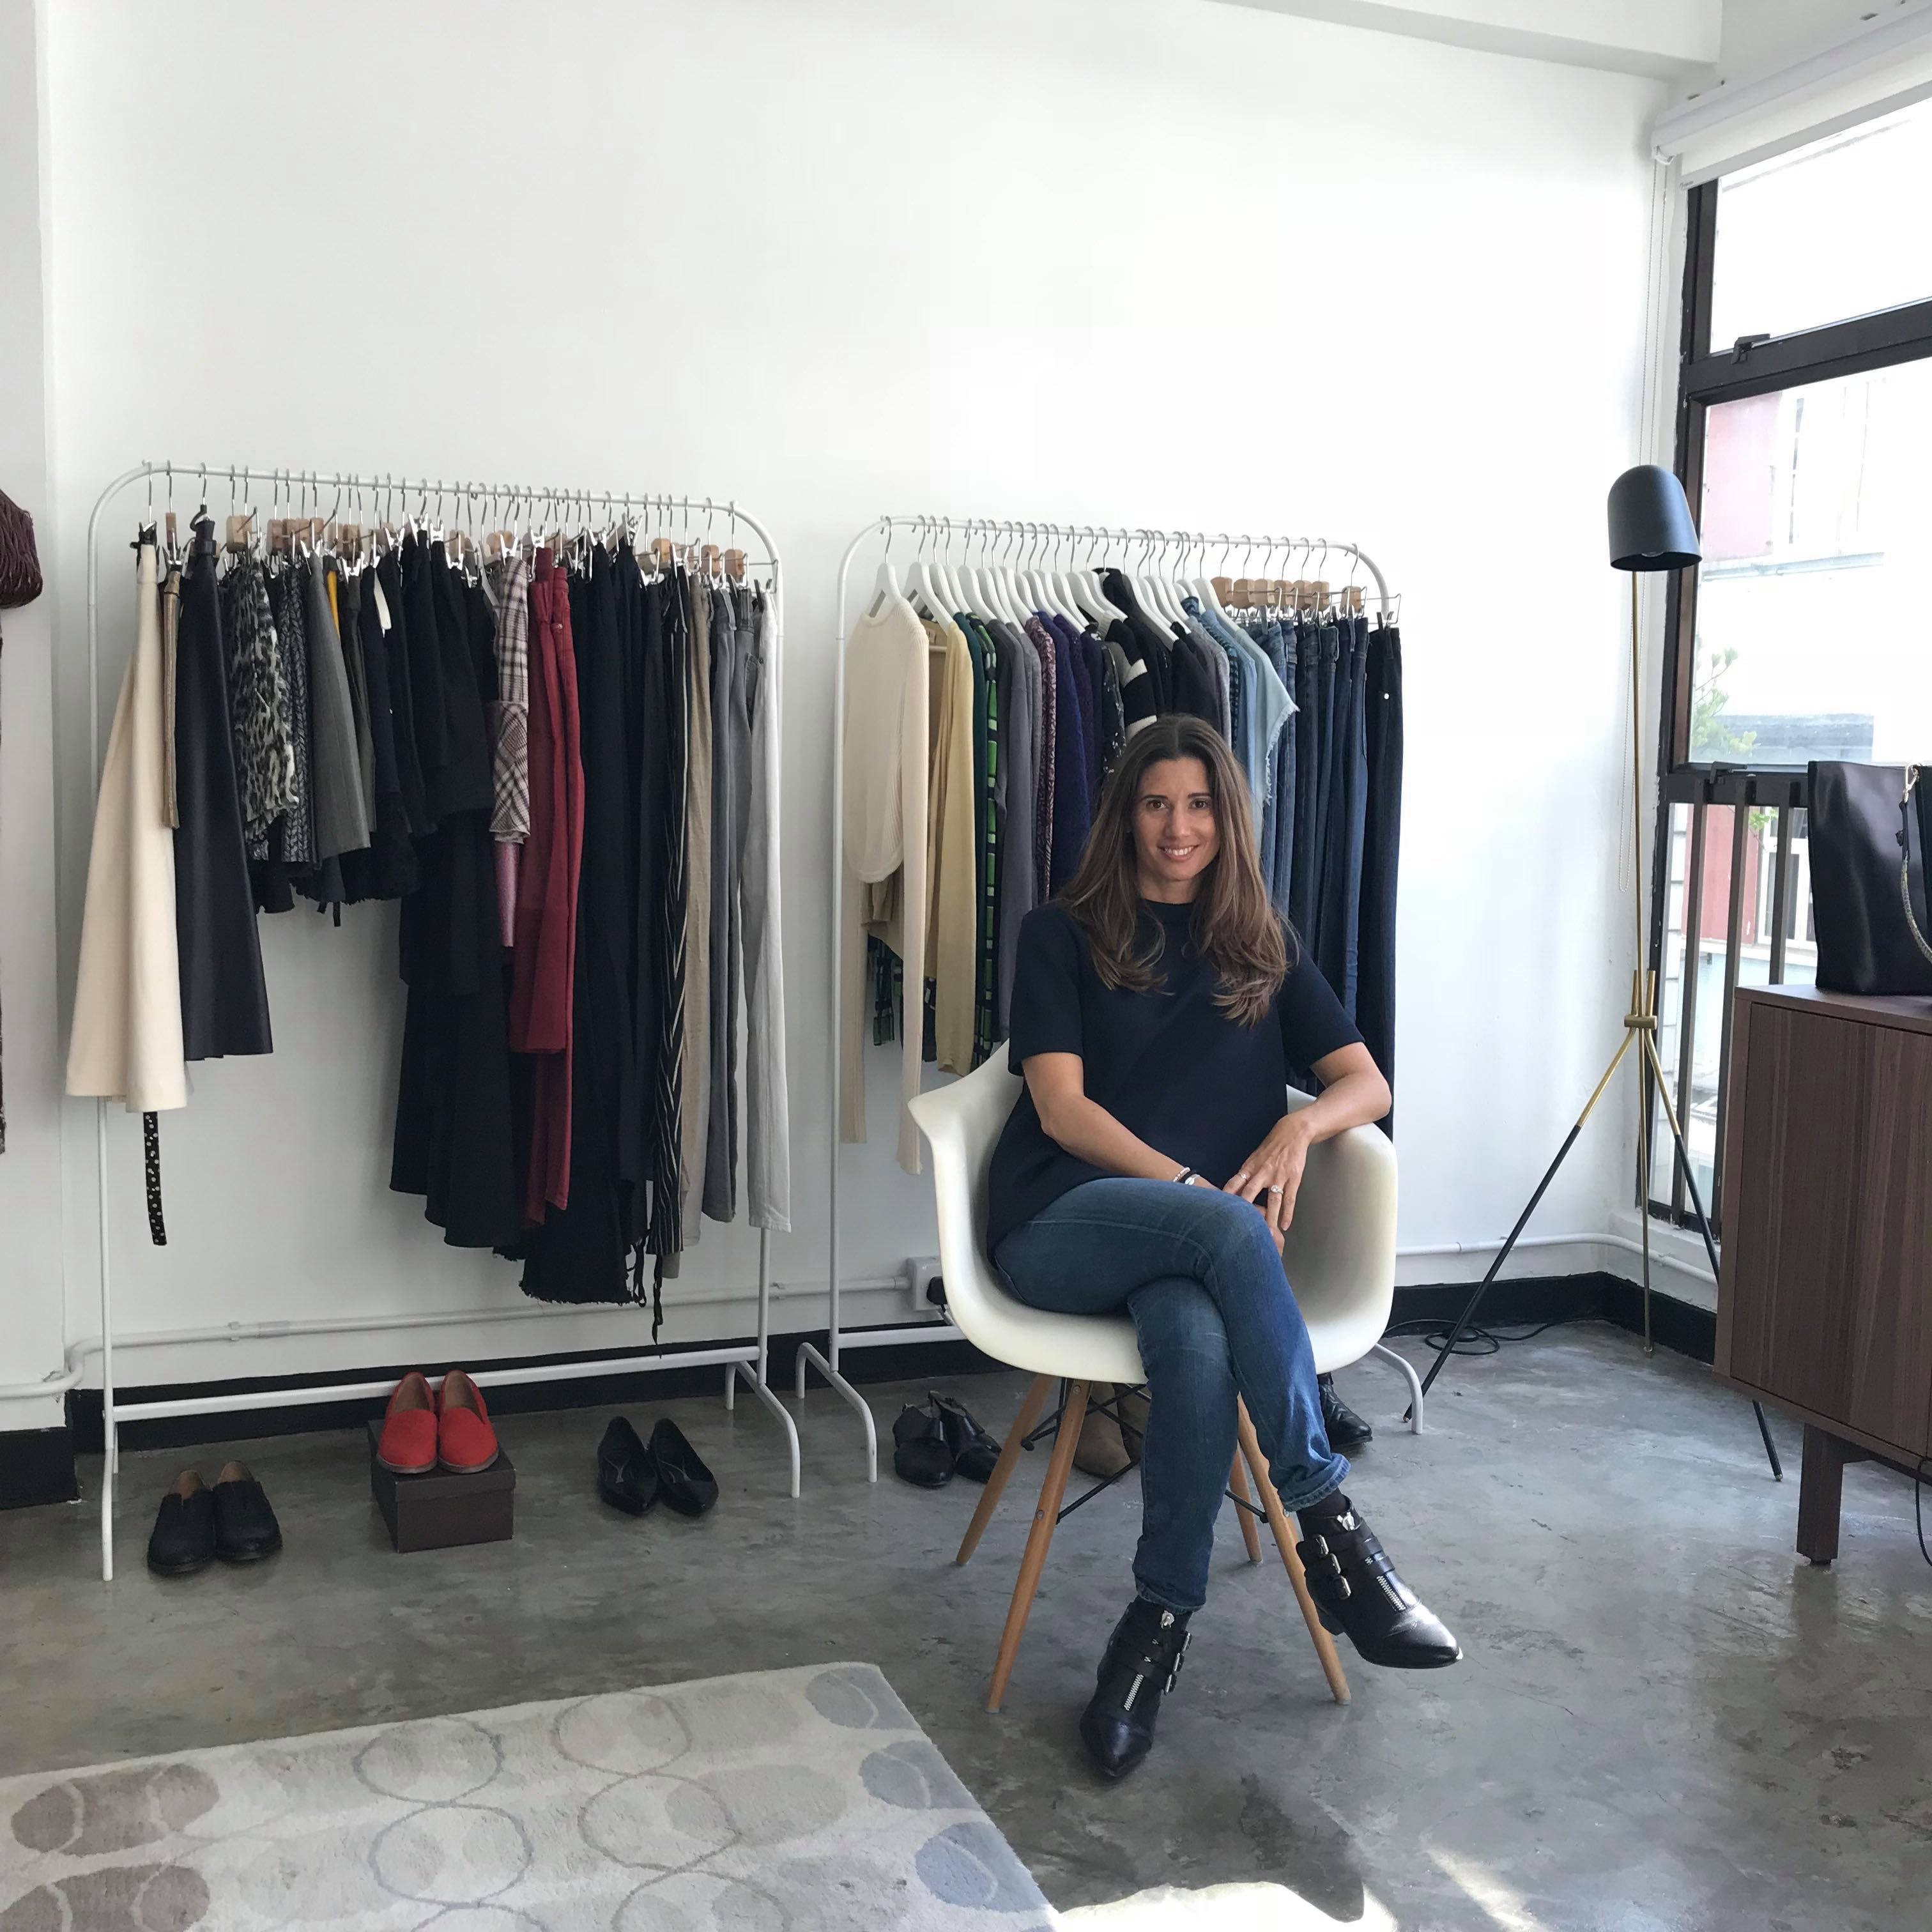 Label Chic founder Heloise Mendes curates her assortment to have a boutique feel.